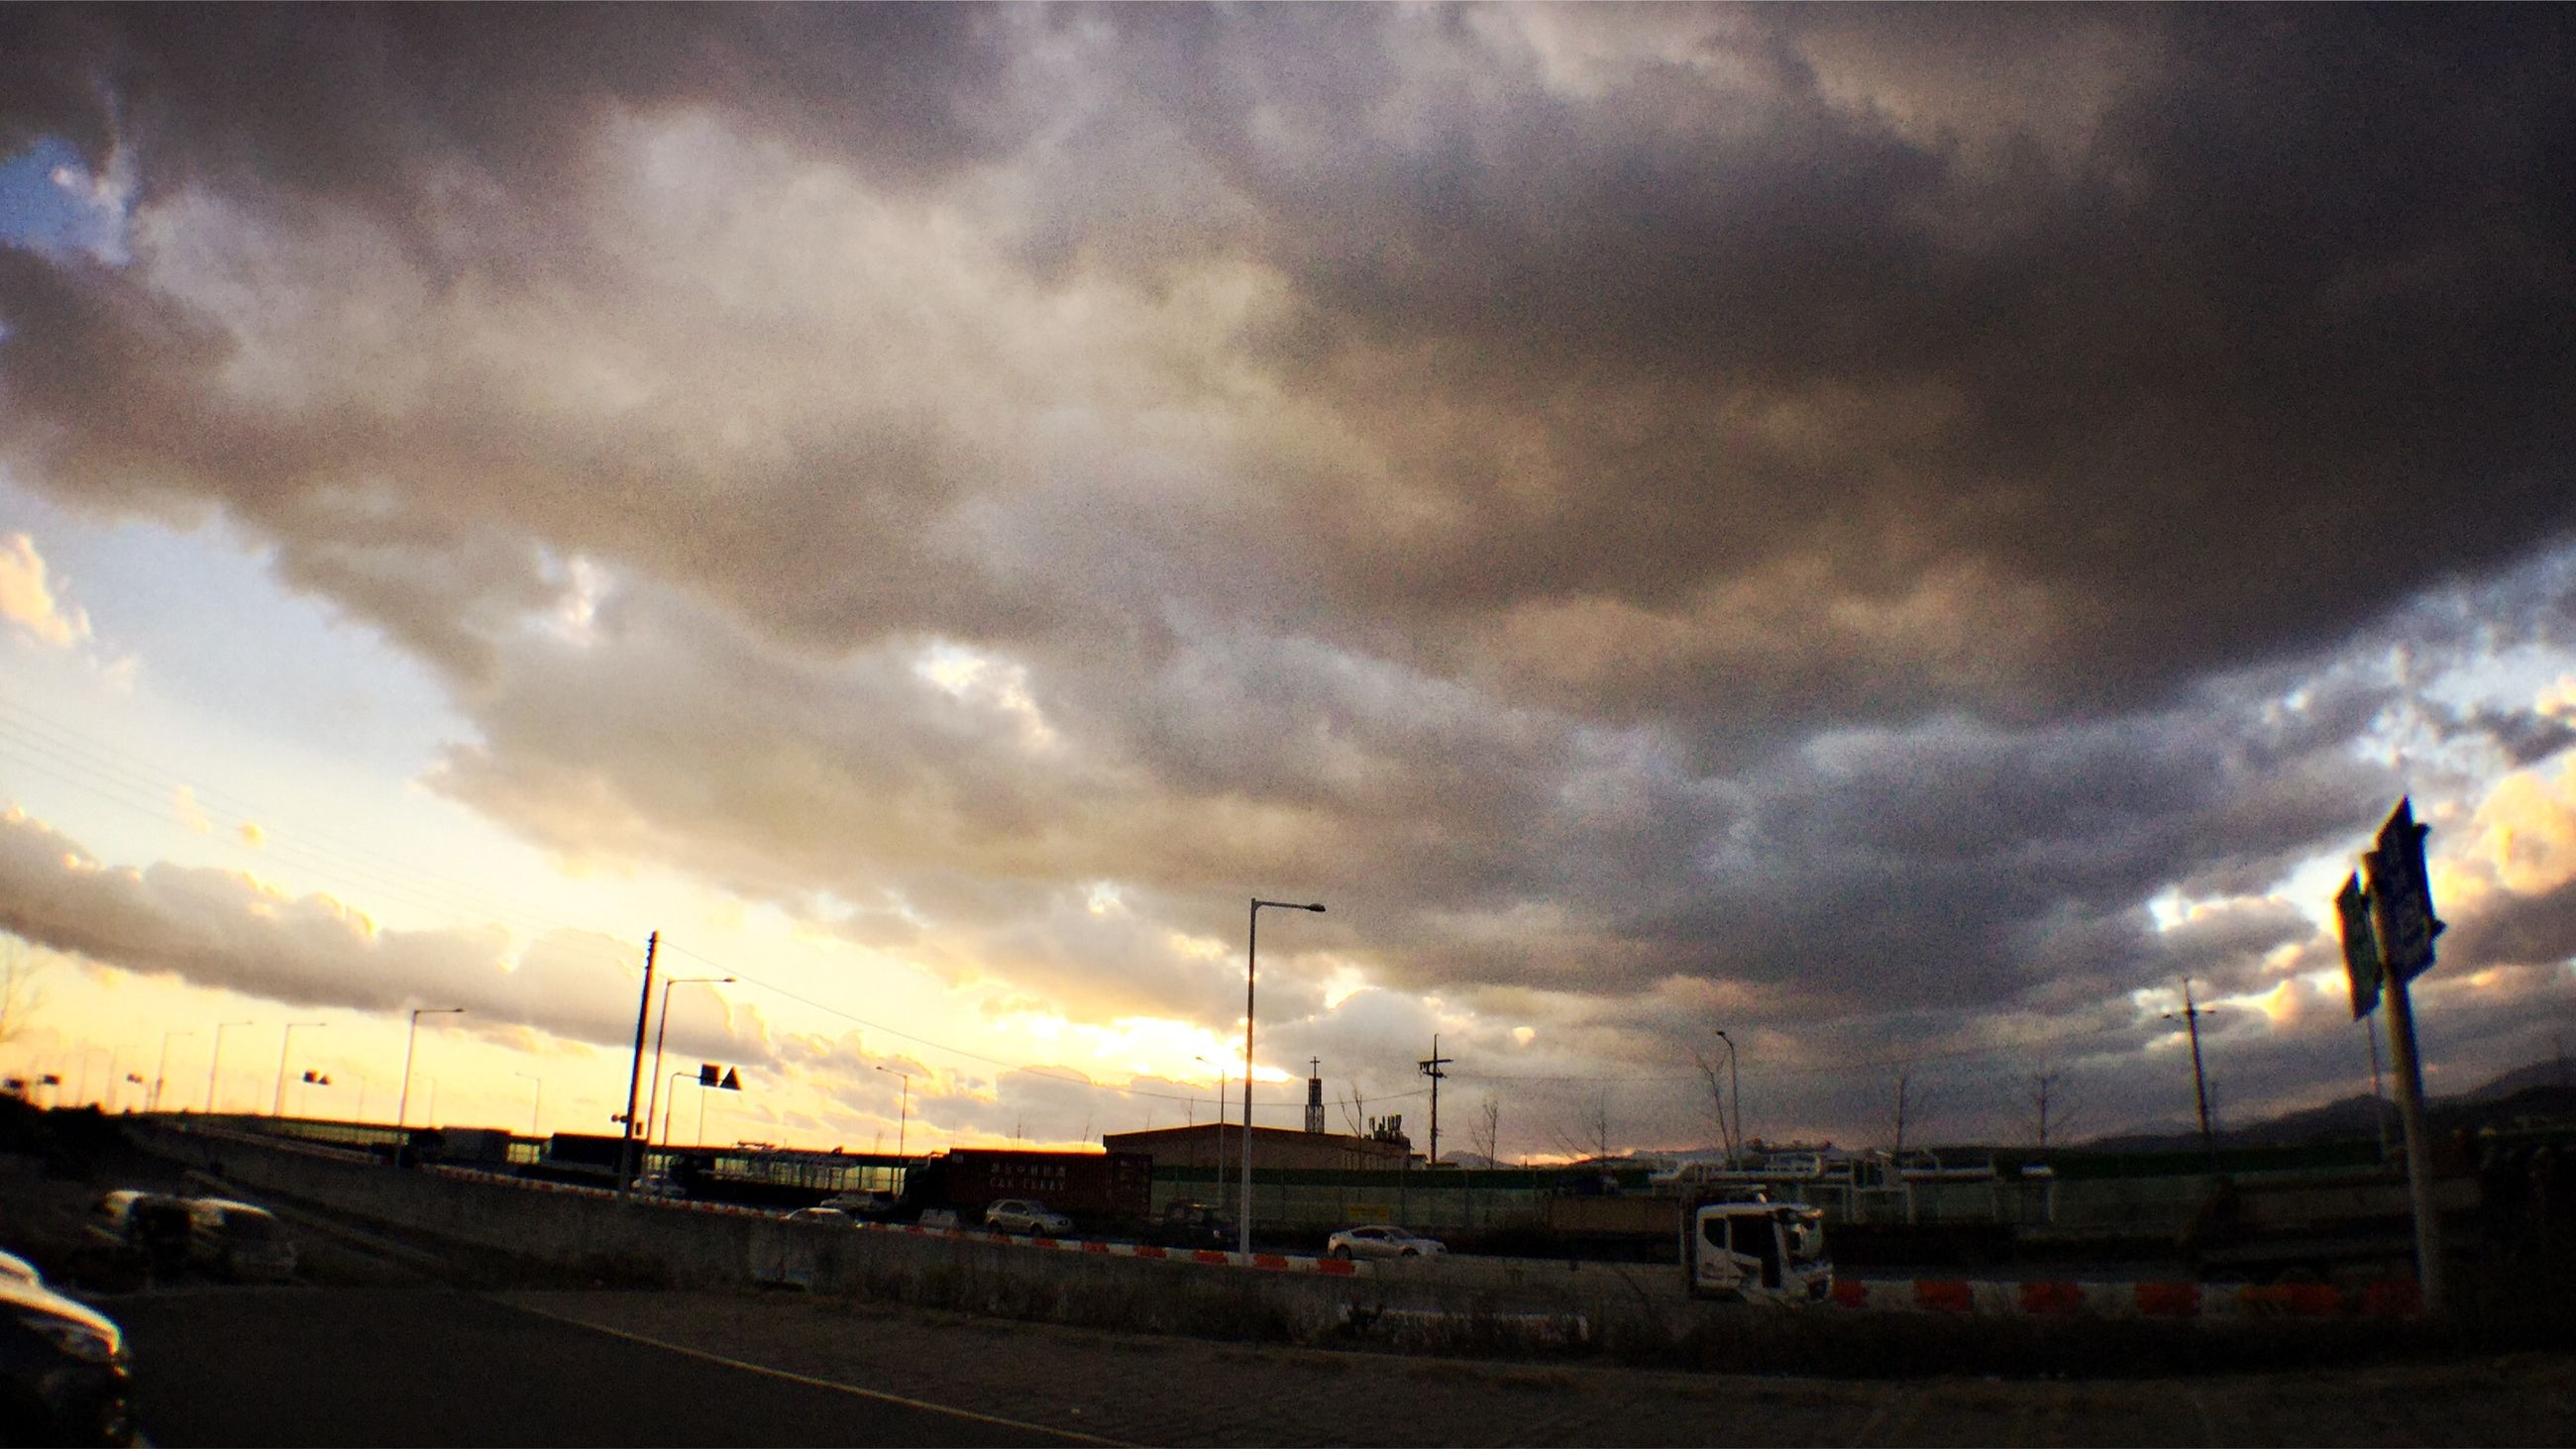 transportation, sky, cloud - sky, mode of transport, road, land vehicle, cloudy, car, road marking, sunset, the way forward, weather, cloud, overcast, dramatic sky, on the move, street, storm cloud, dusk, silhouette